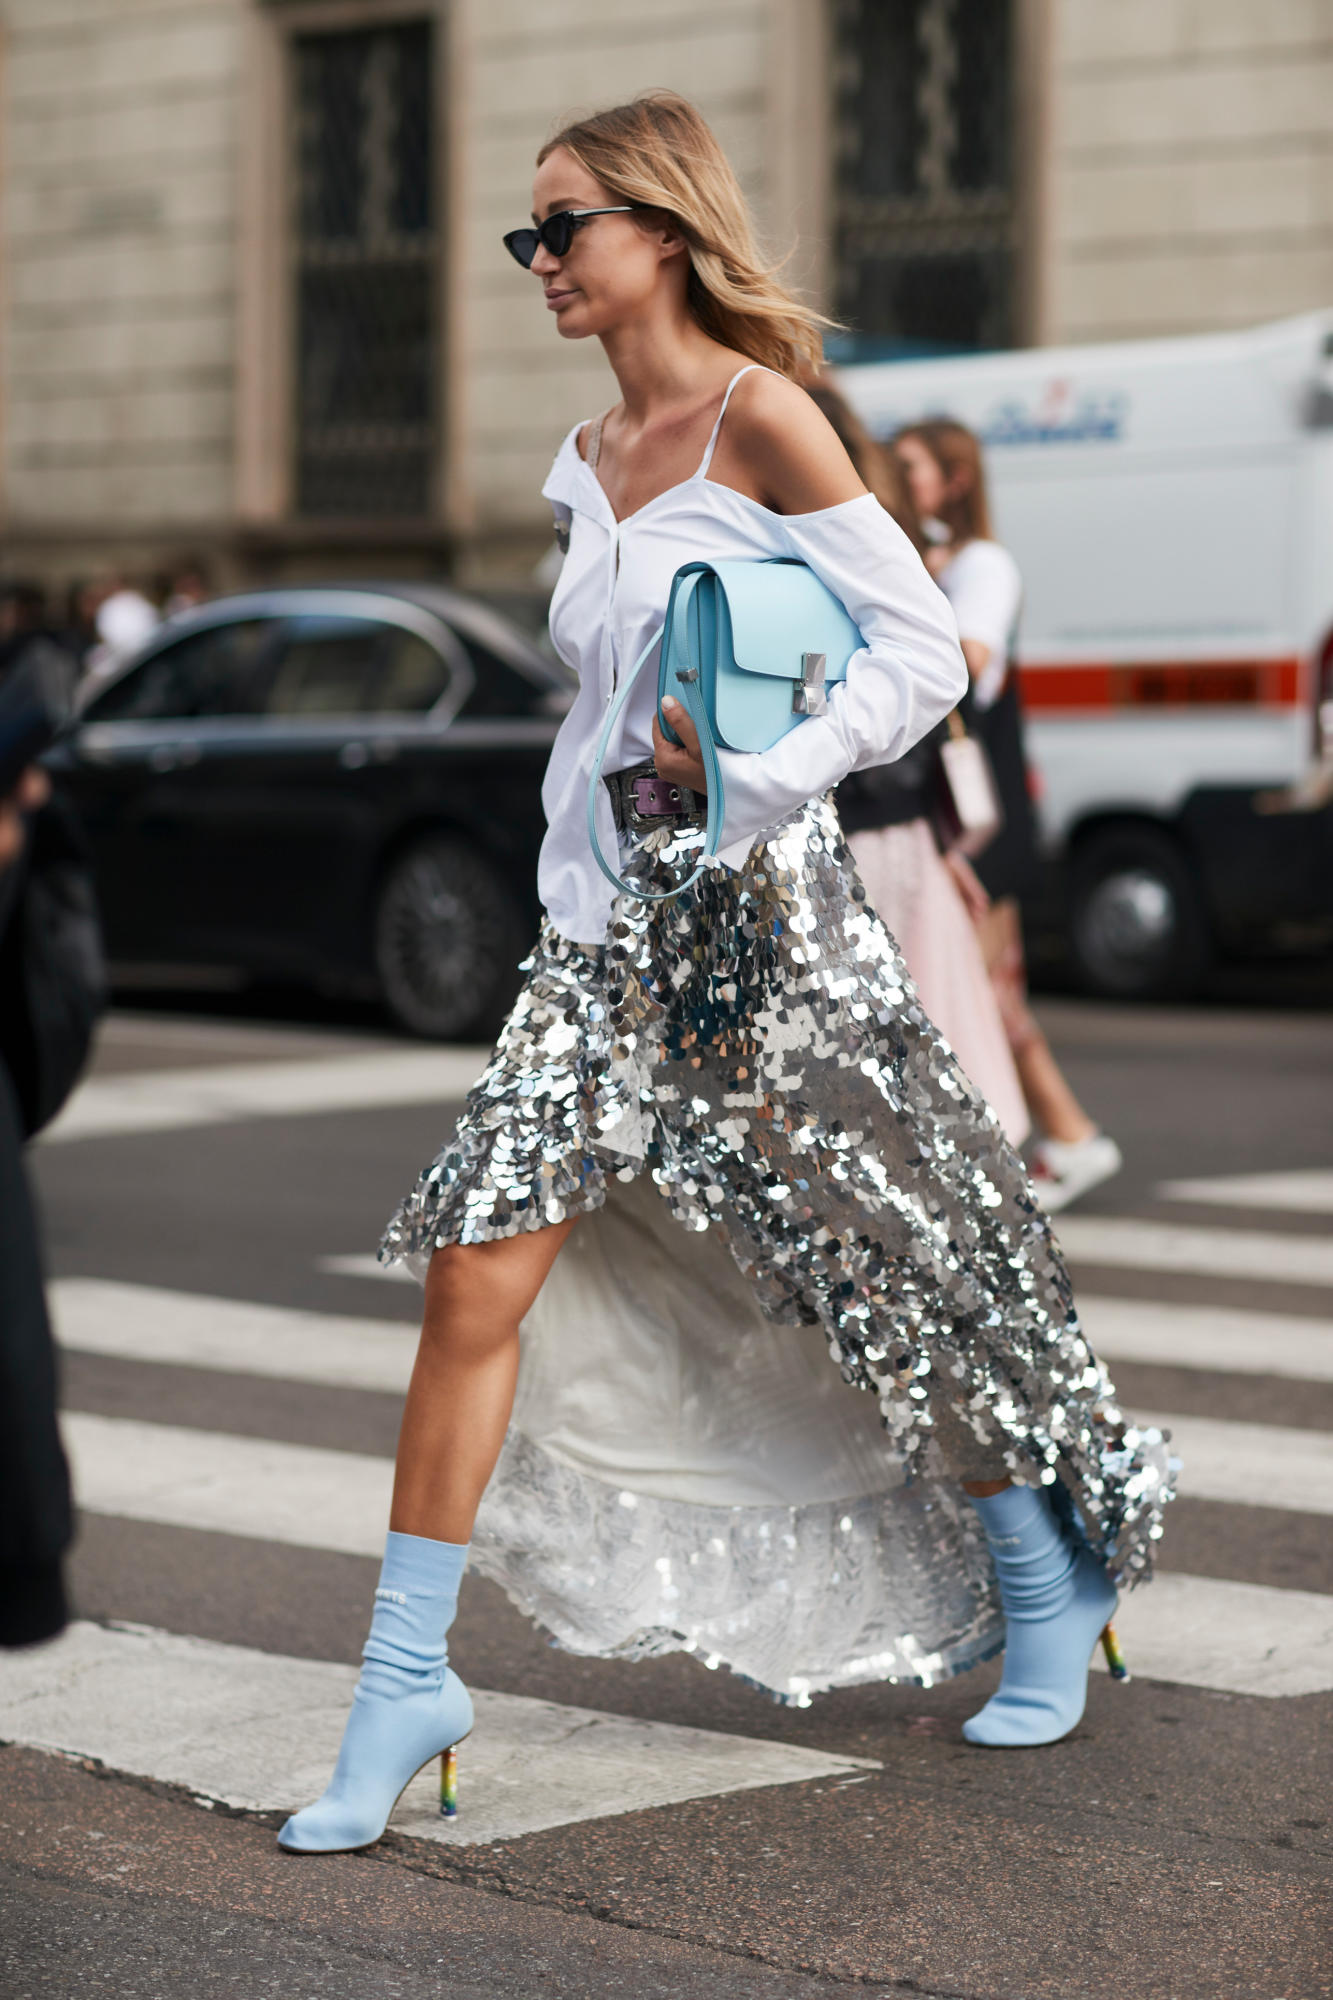 2018 Must Haves: Yes, The Milan Fashion Week Street Style Spring 2018 Was